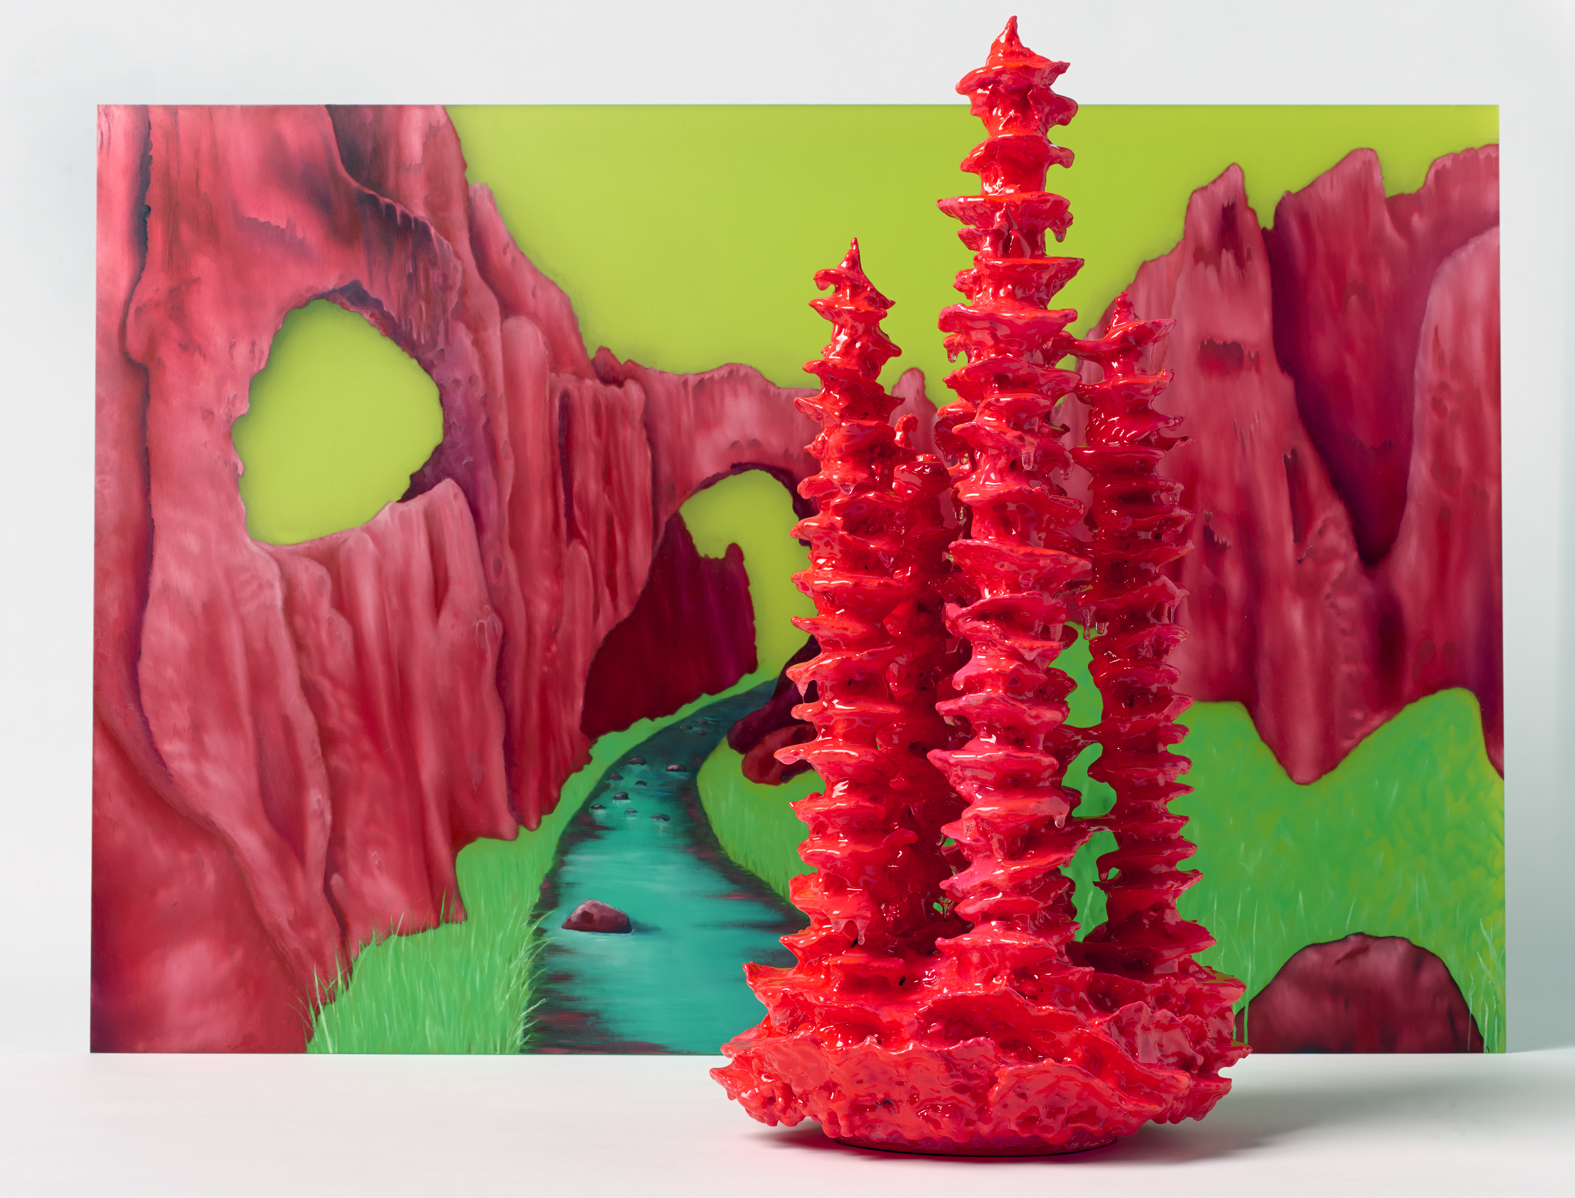 TRACY SARROFF     The Crimson Arch and Stalagmite  2013 oil paint on perspex 56 x 83 cm